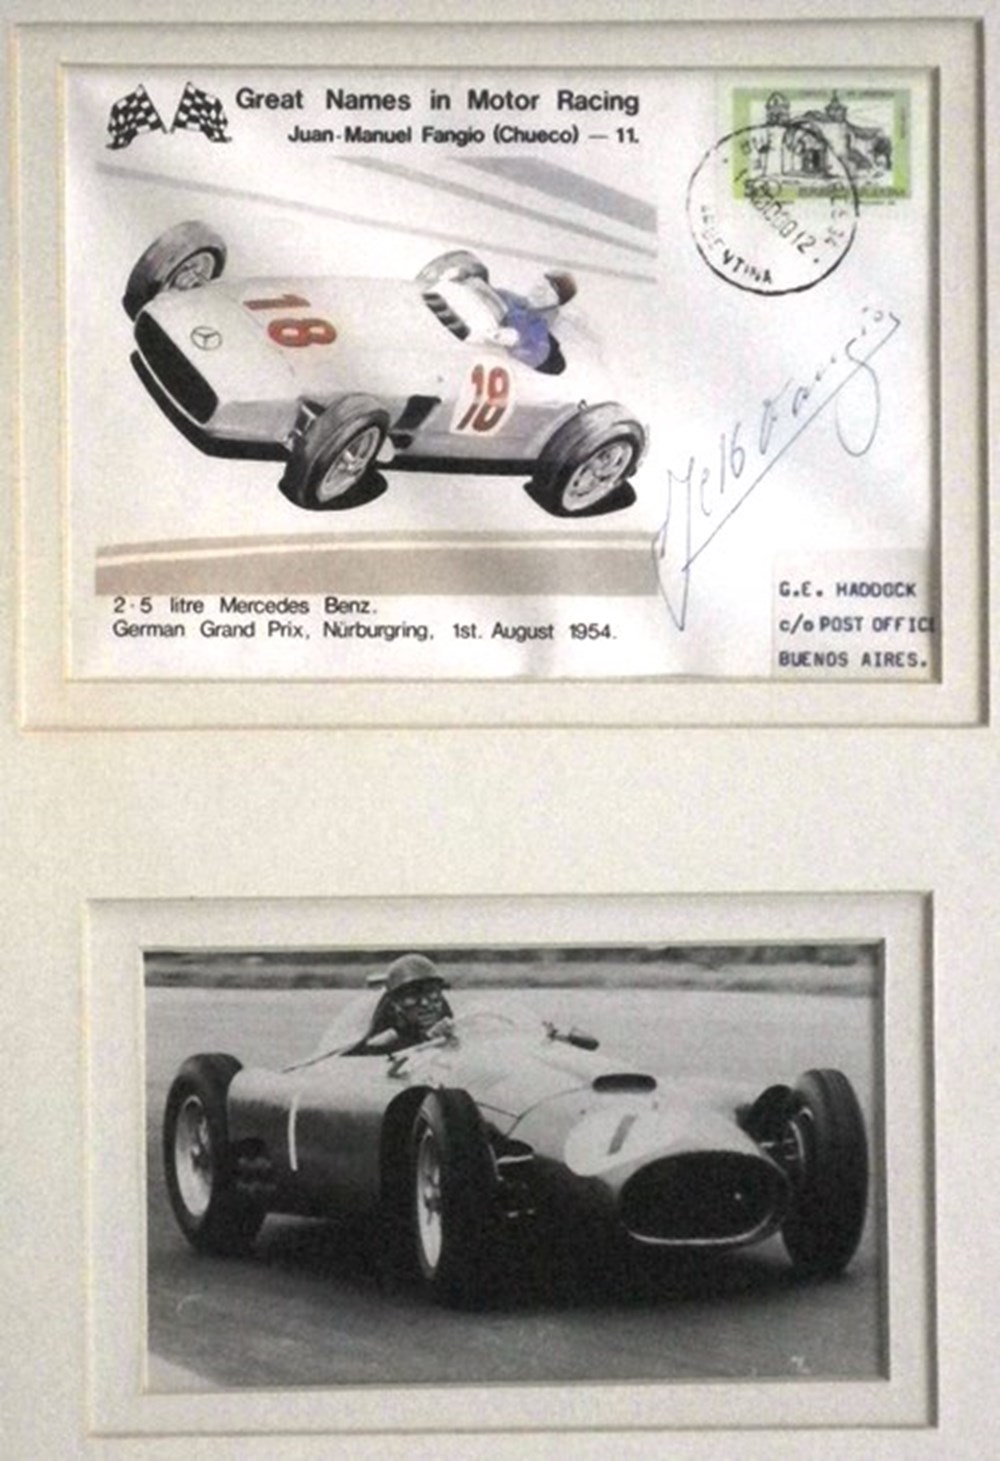 Lot 105 - Signed Fangio Print